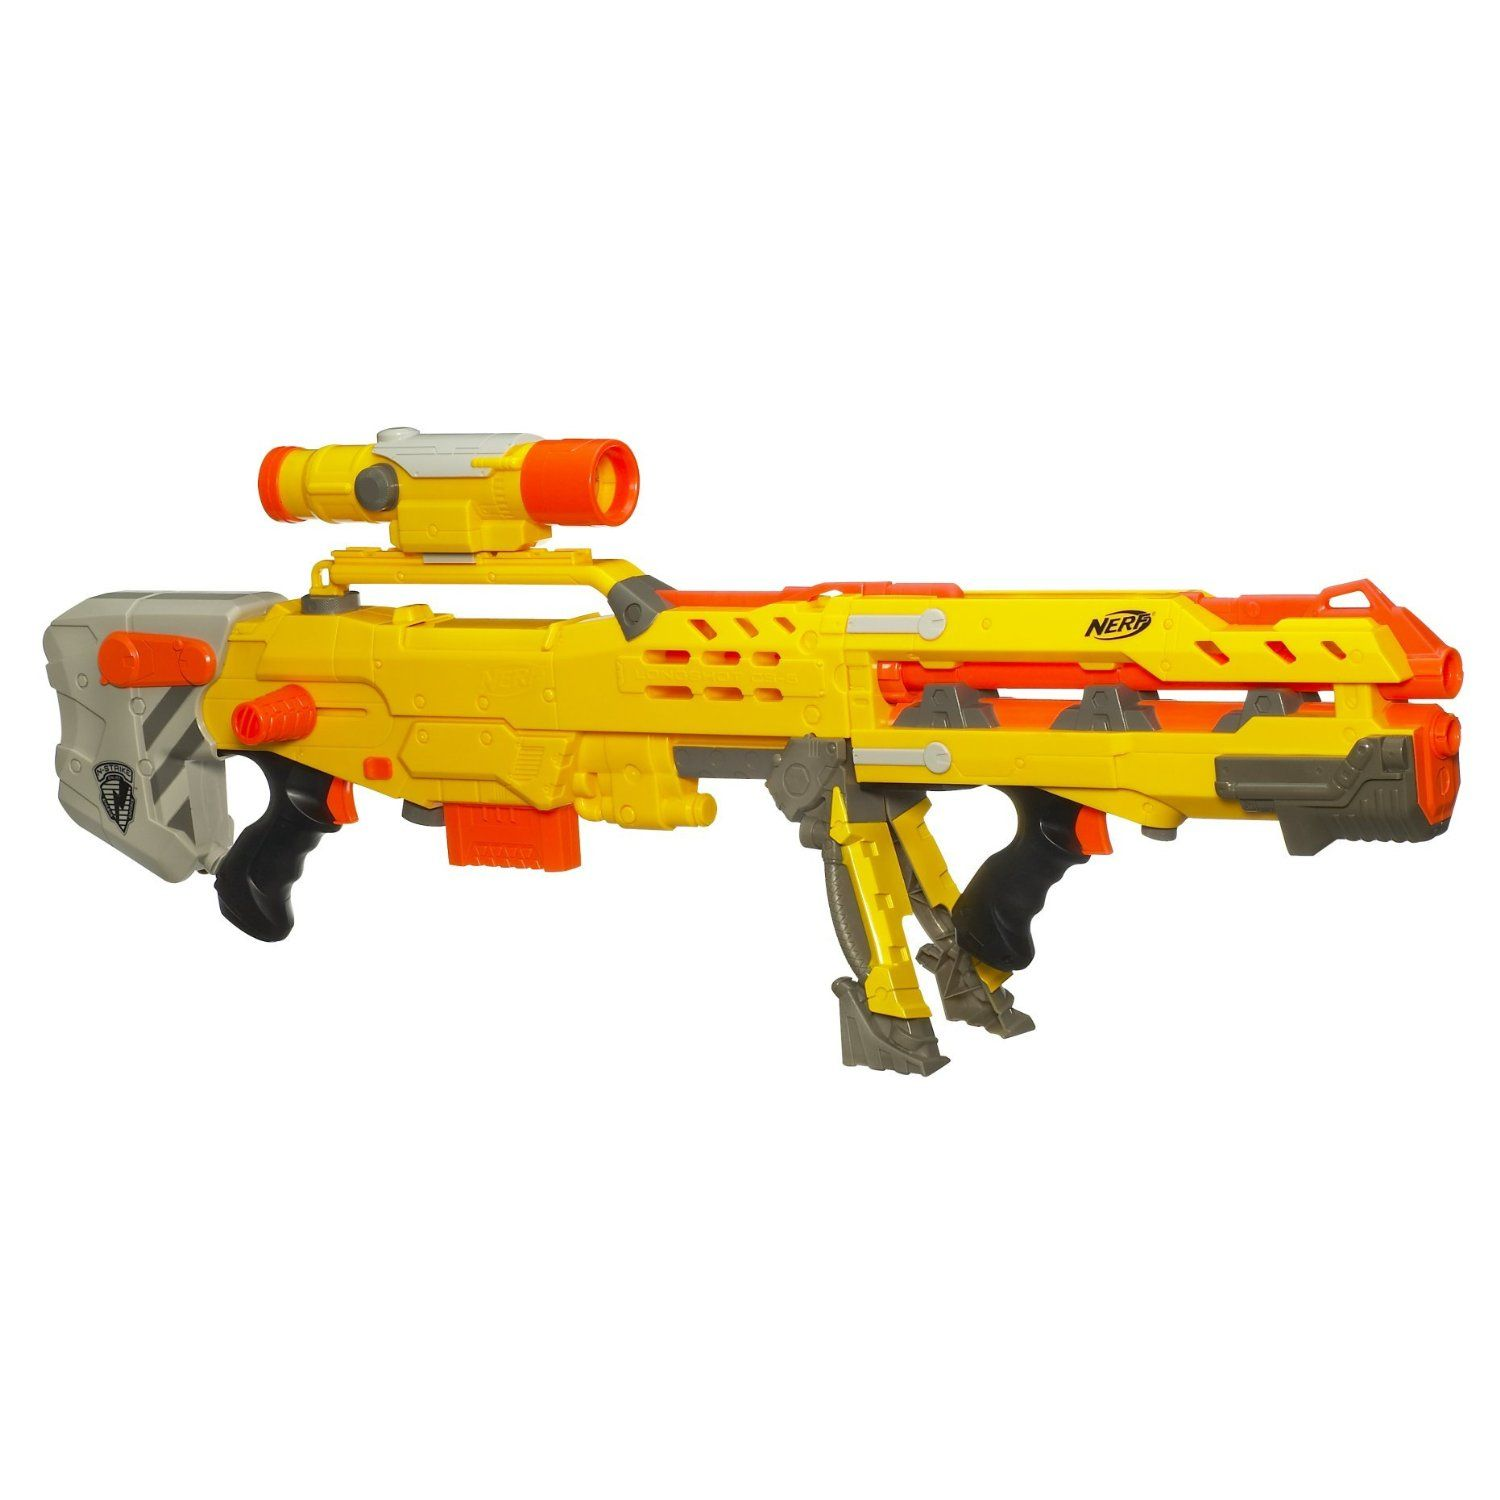 Black Friday 2014 Nerf N-Strike Longshot from Hasbro Cyber Monday. Black  Friday specials on the season most-wanted Christmas gifts.